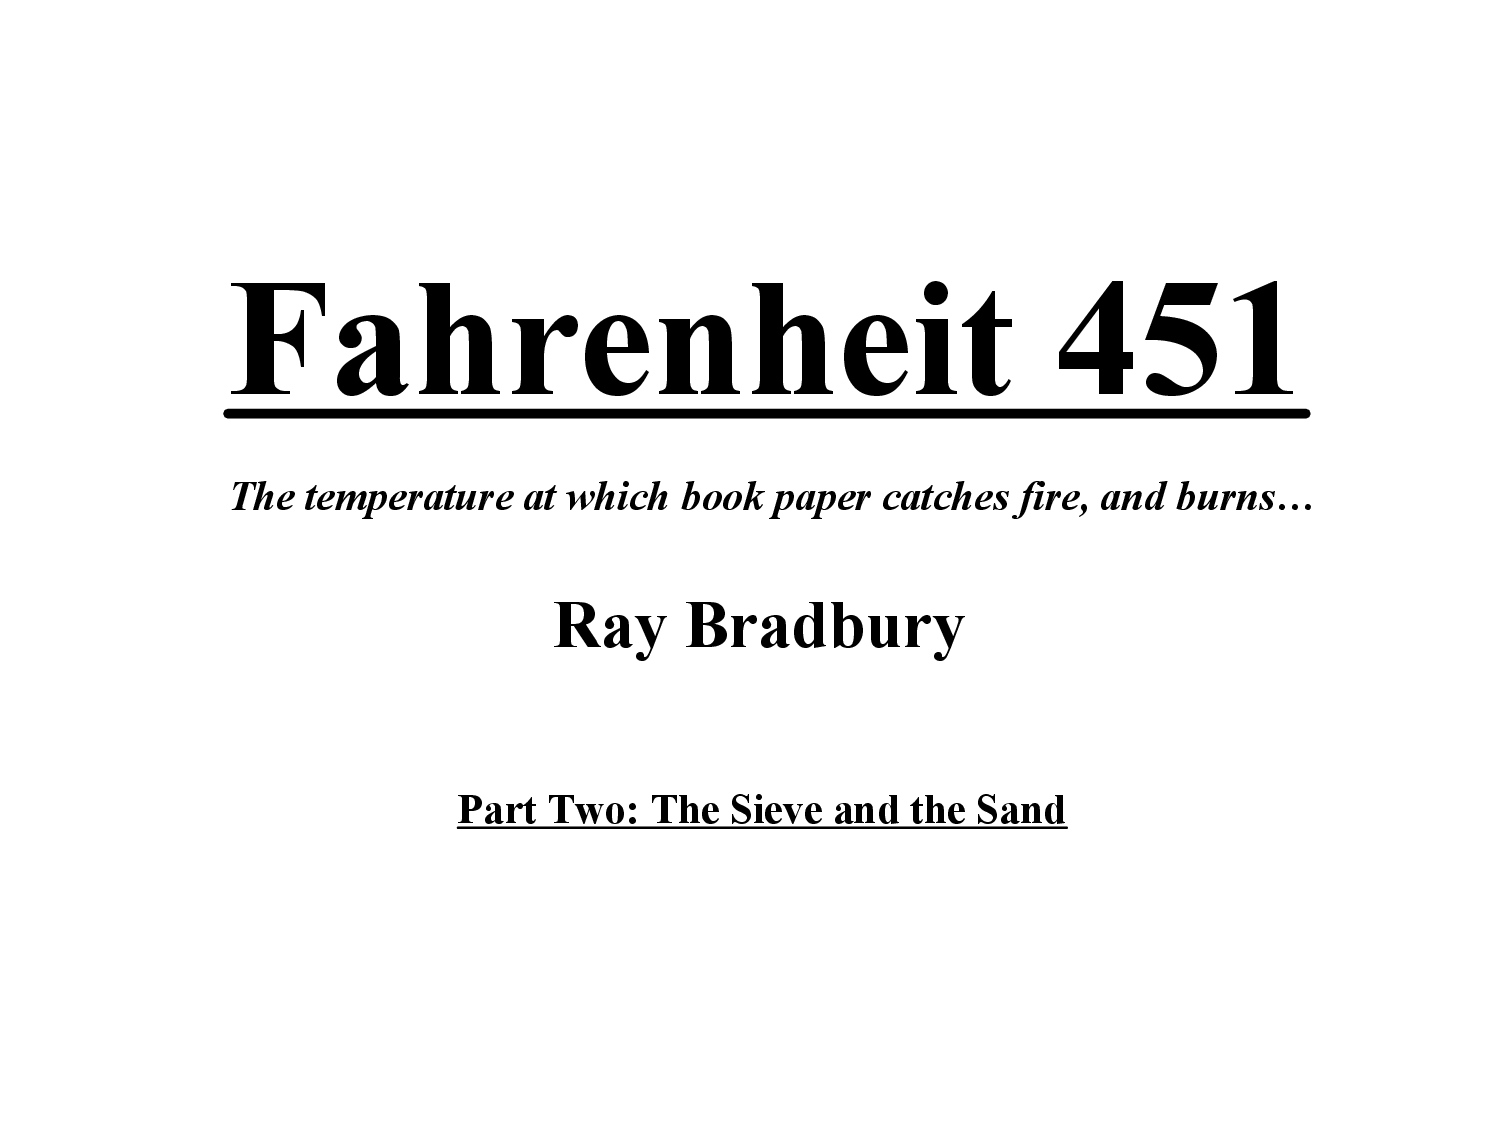 fahrenheit 451 symbolism river Symbolism in fahrenheit 451 ray bradbury, perhaps one of the best-known science fiction, wrote the amazing novel fahrenheit 451 the novel is about guy montag, a fireman' who produces fires instead of eliminating them in order to burn books (watt 2.